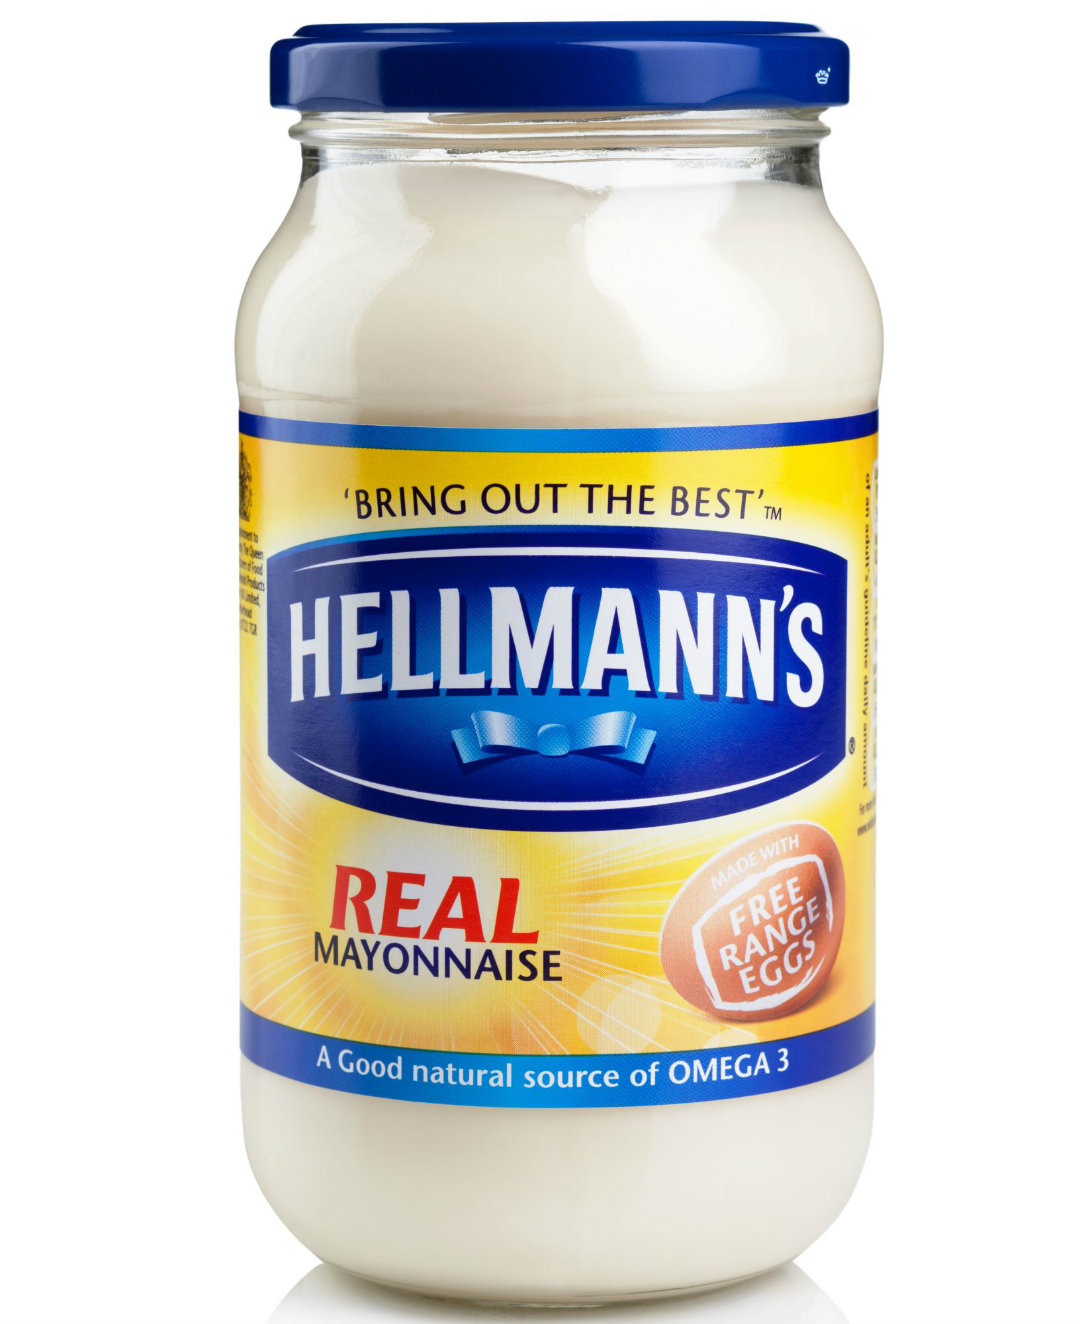 Jar of Hellmann's Real Mayonnaise